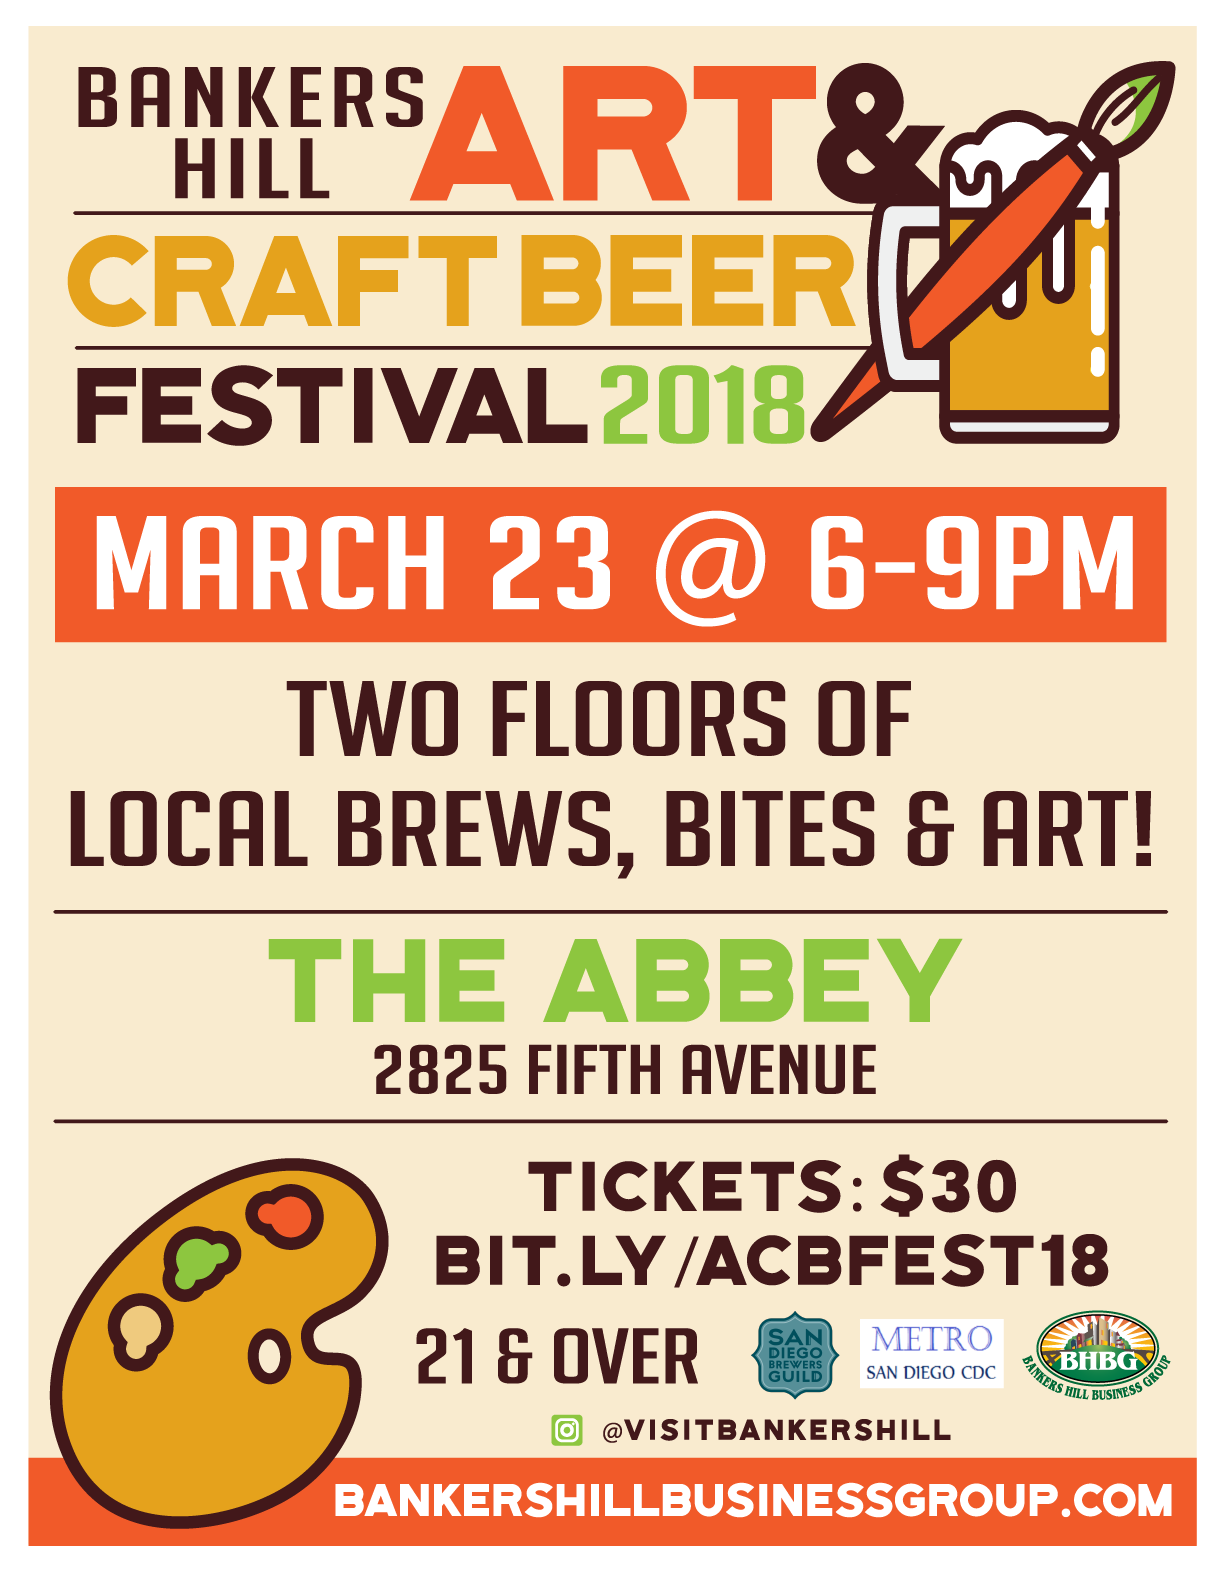 Bankers hill art craft beer festival friday march 23 for Craft beer guild san diego